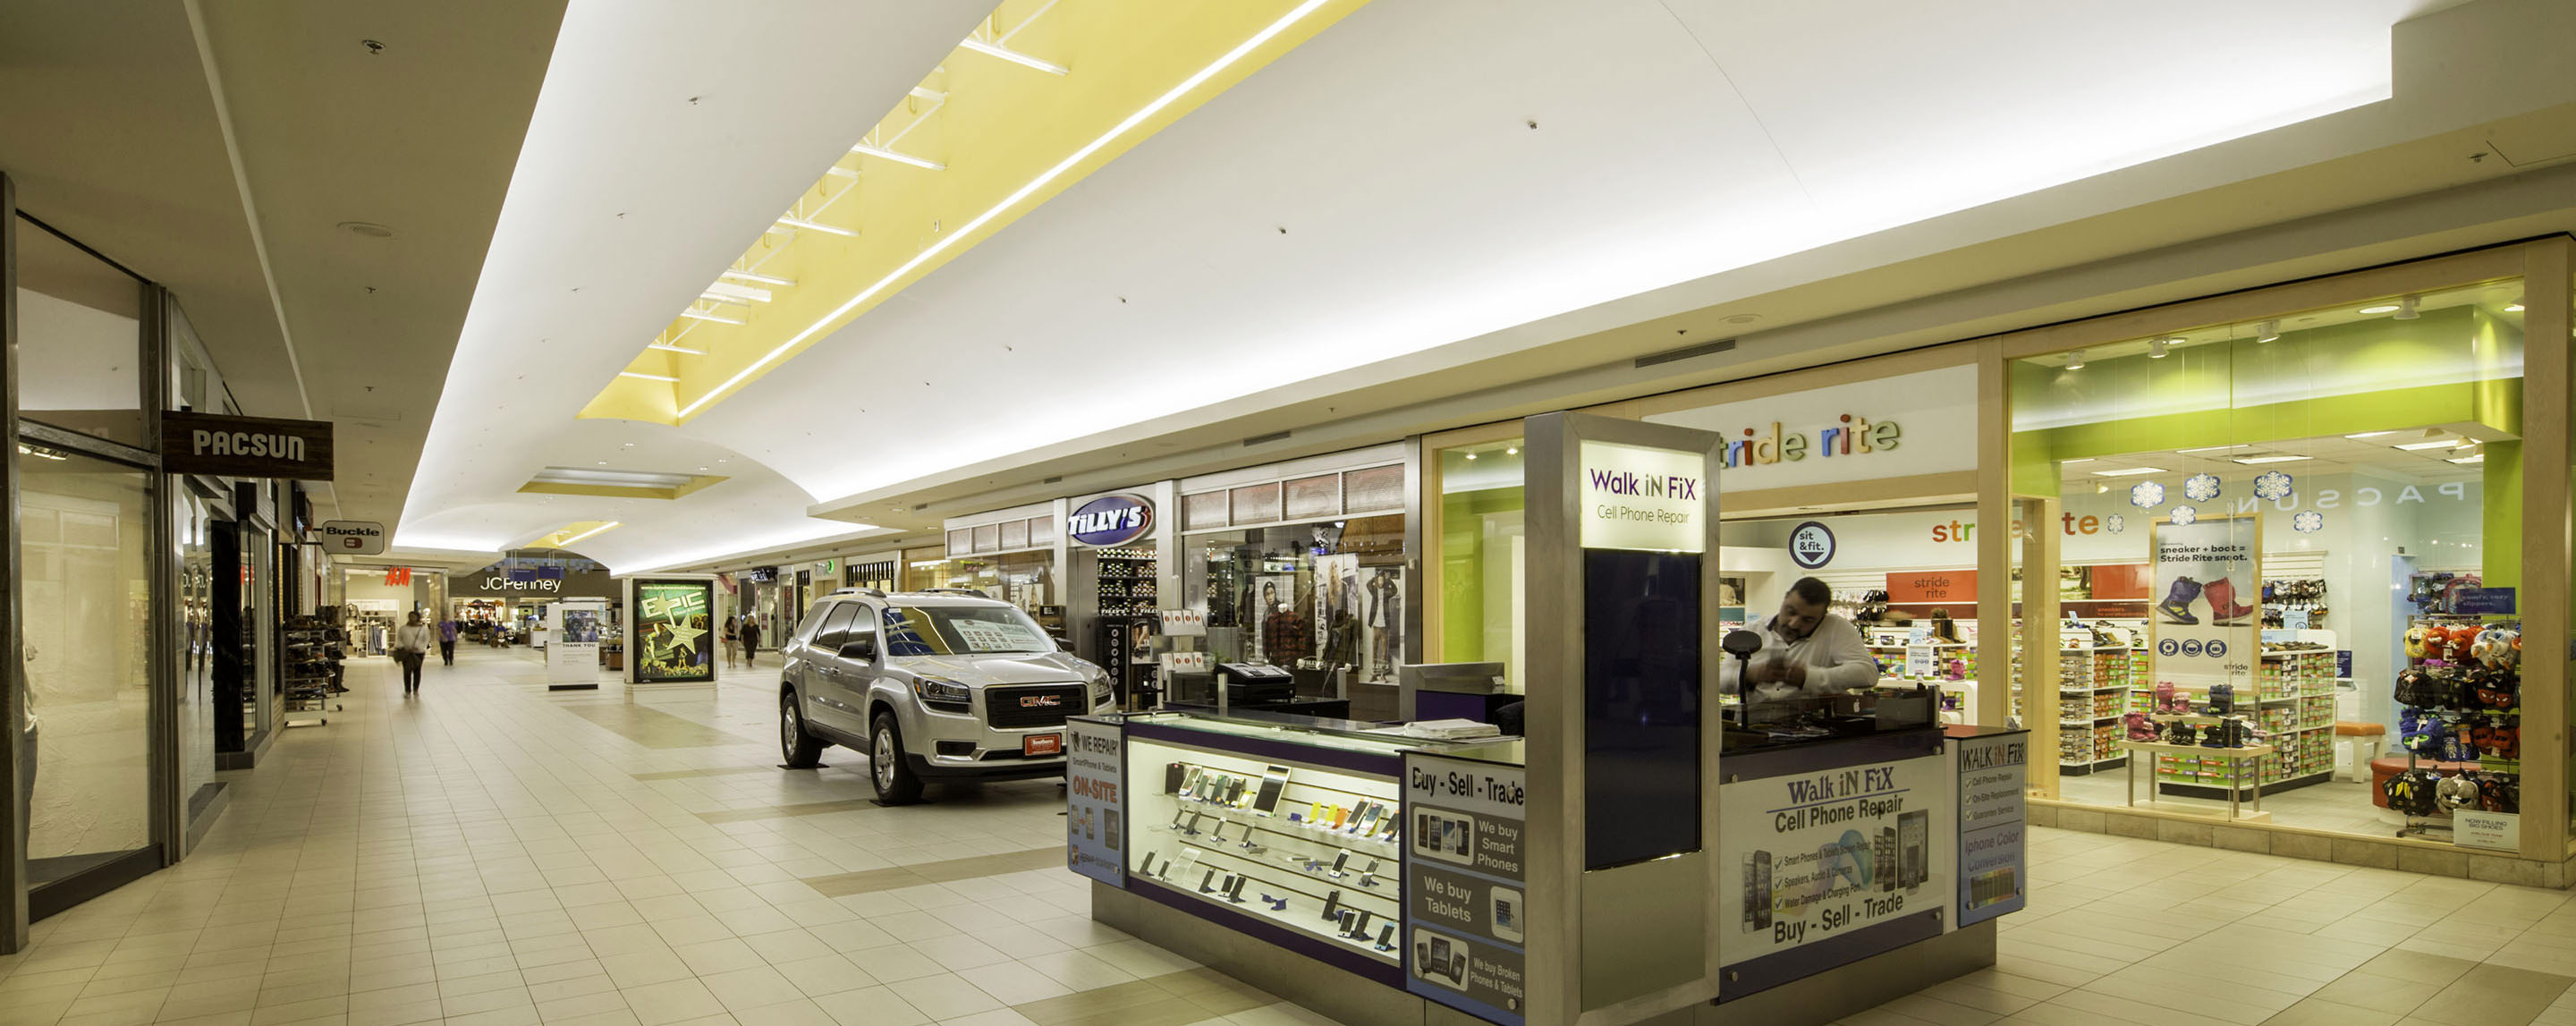 In an interior Lynnhaven Mall walkway, store fronts line the hallway and kiosks and a new car are displayed in the middle.